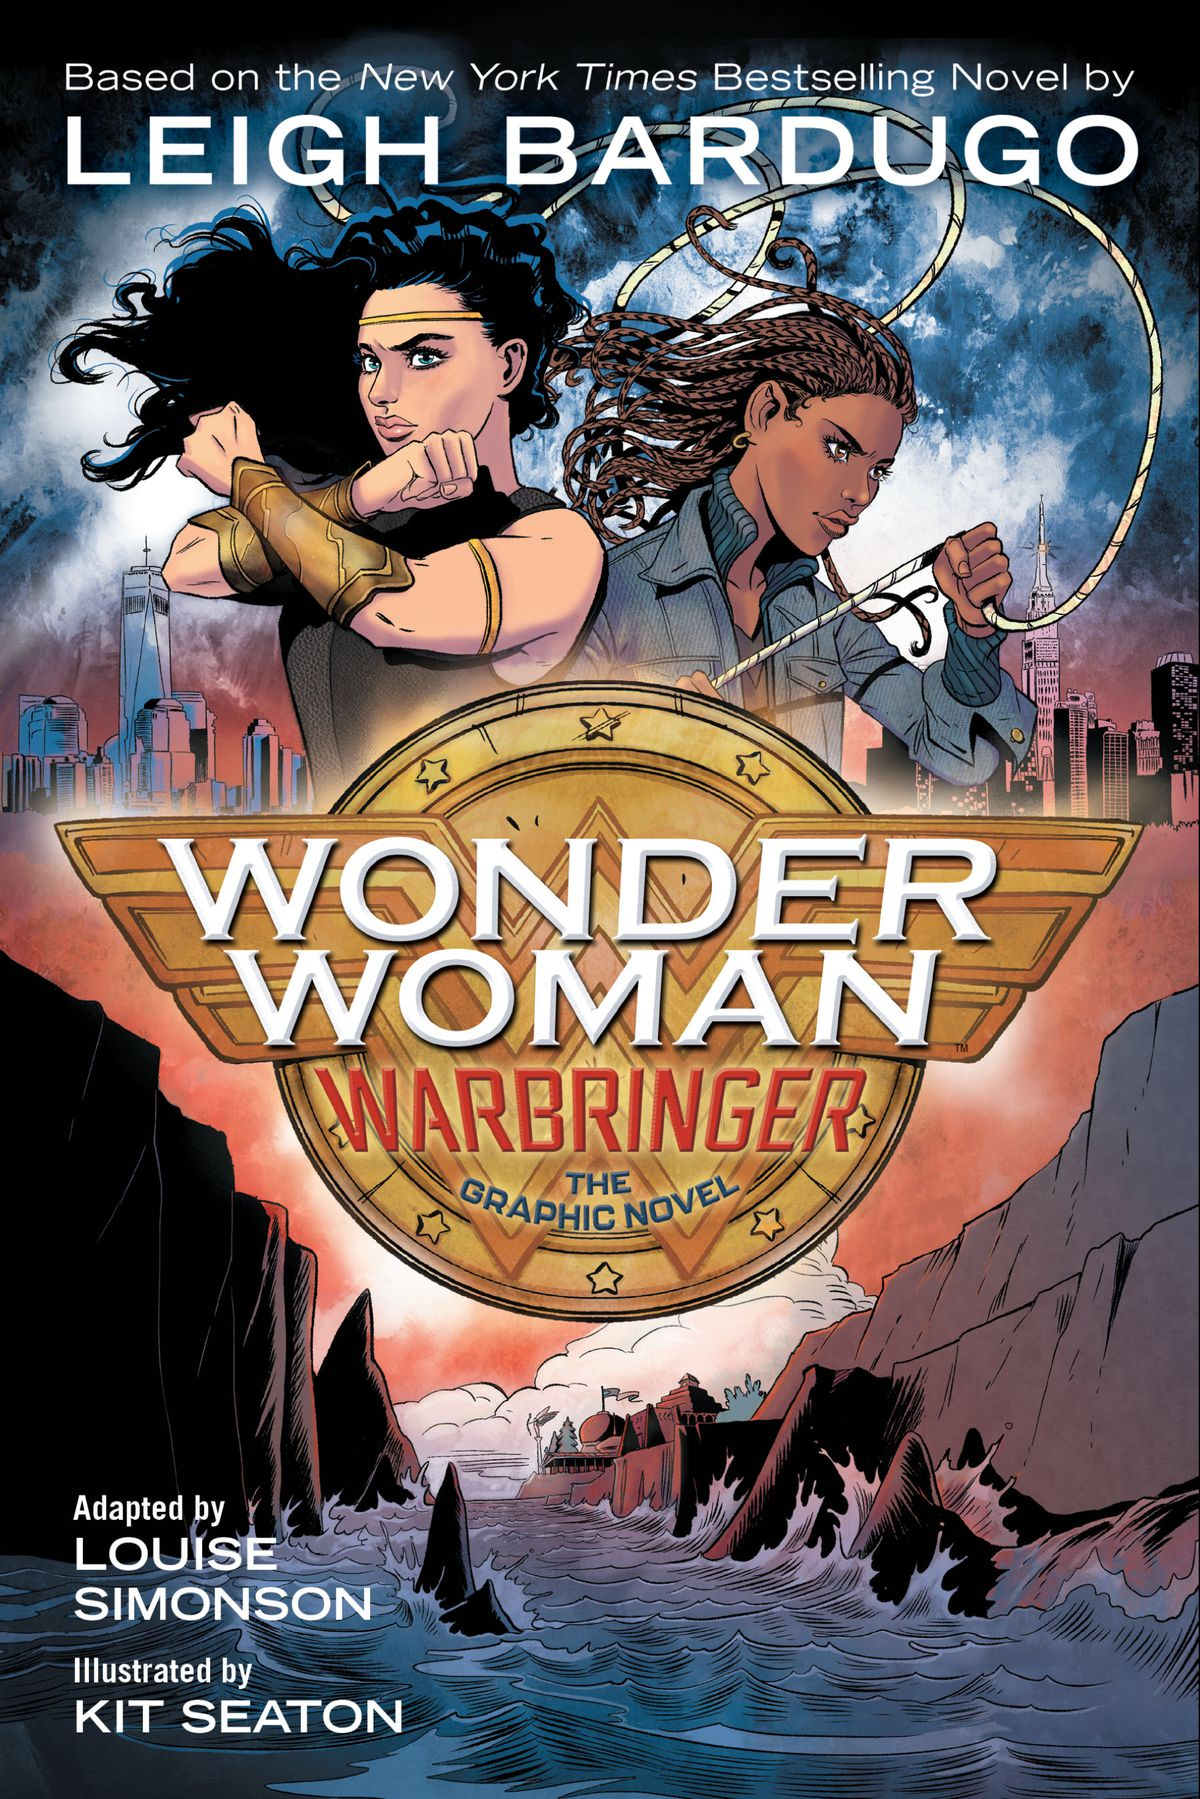 Wonder Woman and Alia square up for battle on the cover of Wonder Woman: Warbringer, the graphic novel.